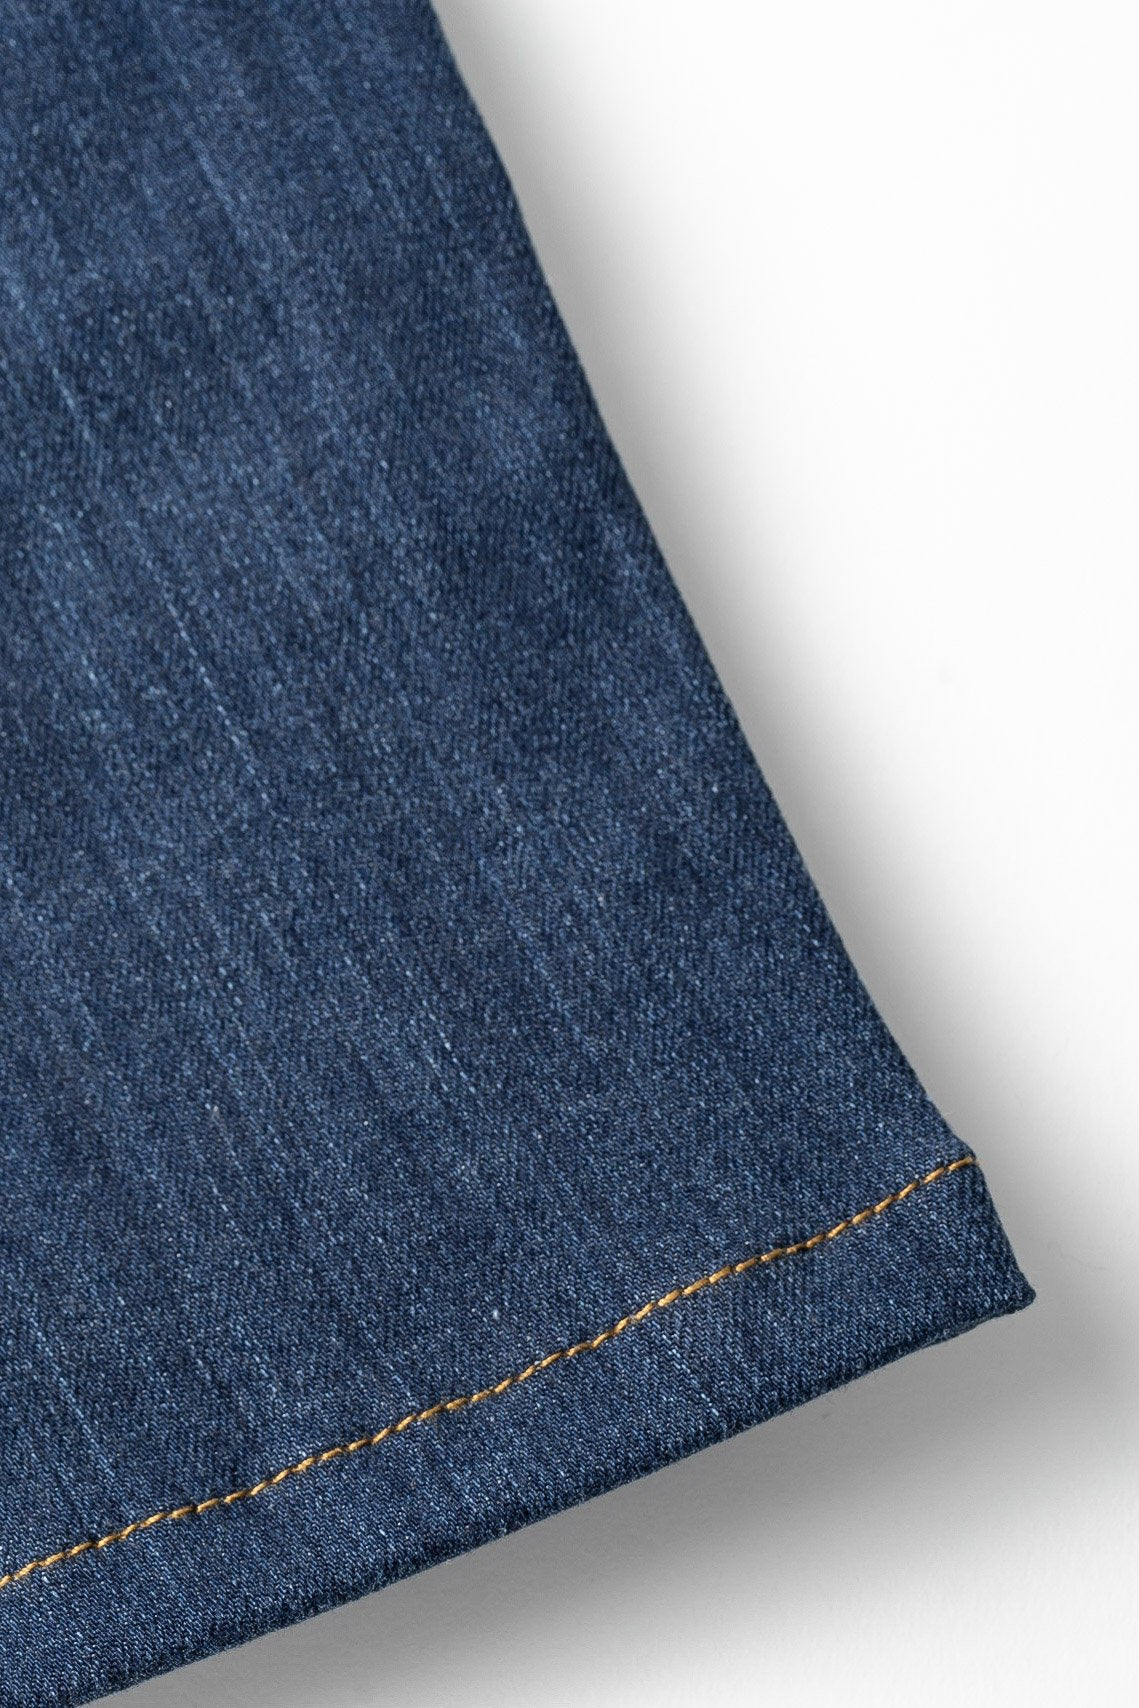 More images: #15: Straight Leg Medium Wash